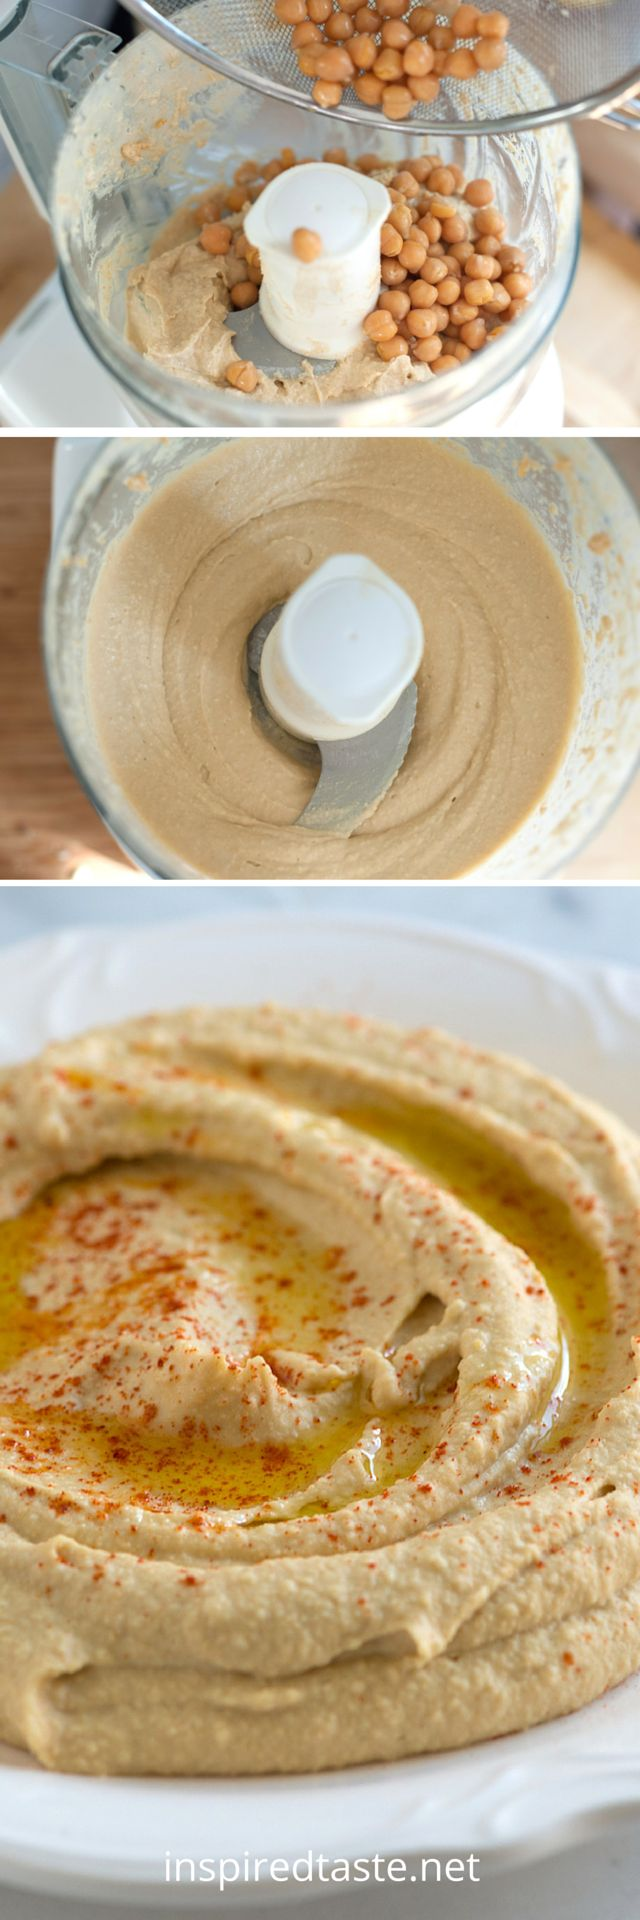 193 best arabic cuisine images on pinterest arabic food arabian better than store bought hummus recipe see the full recipe with video on inspiredtaste forumfinder Gallery